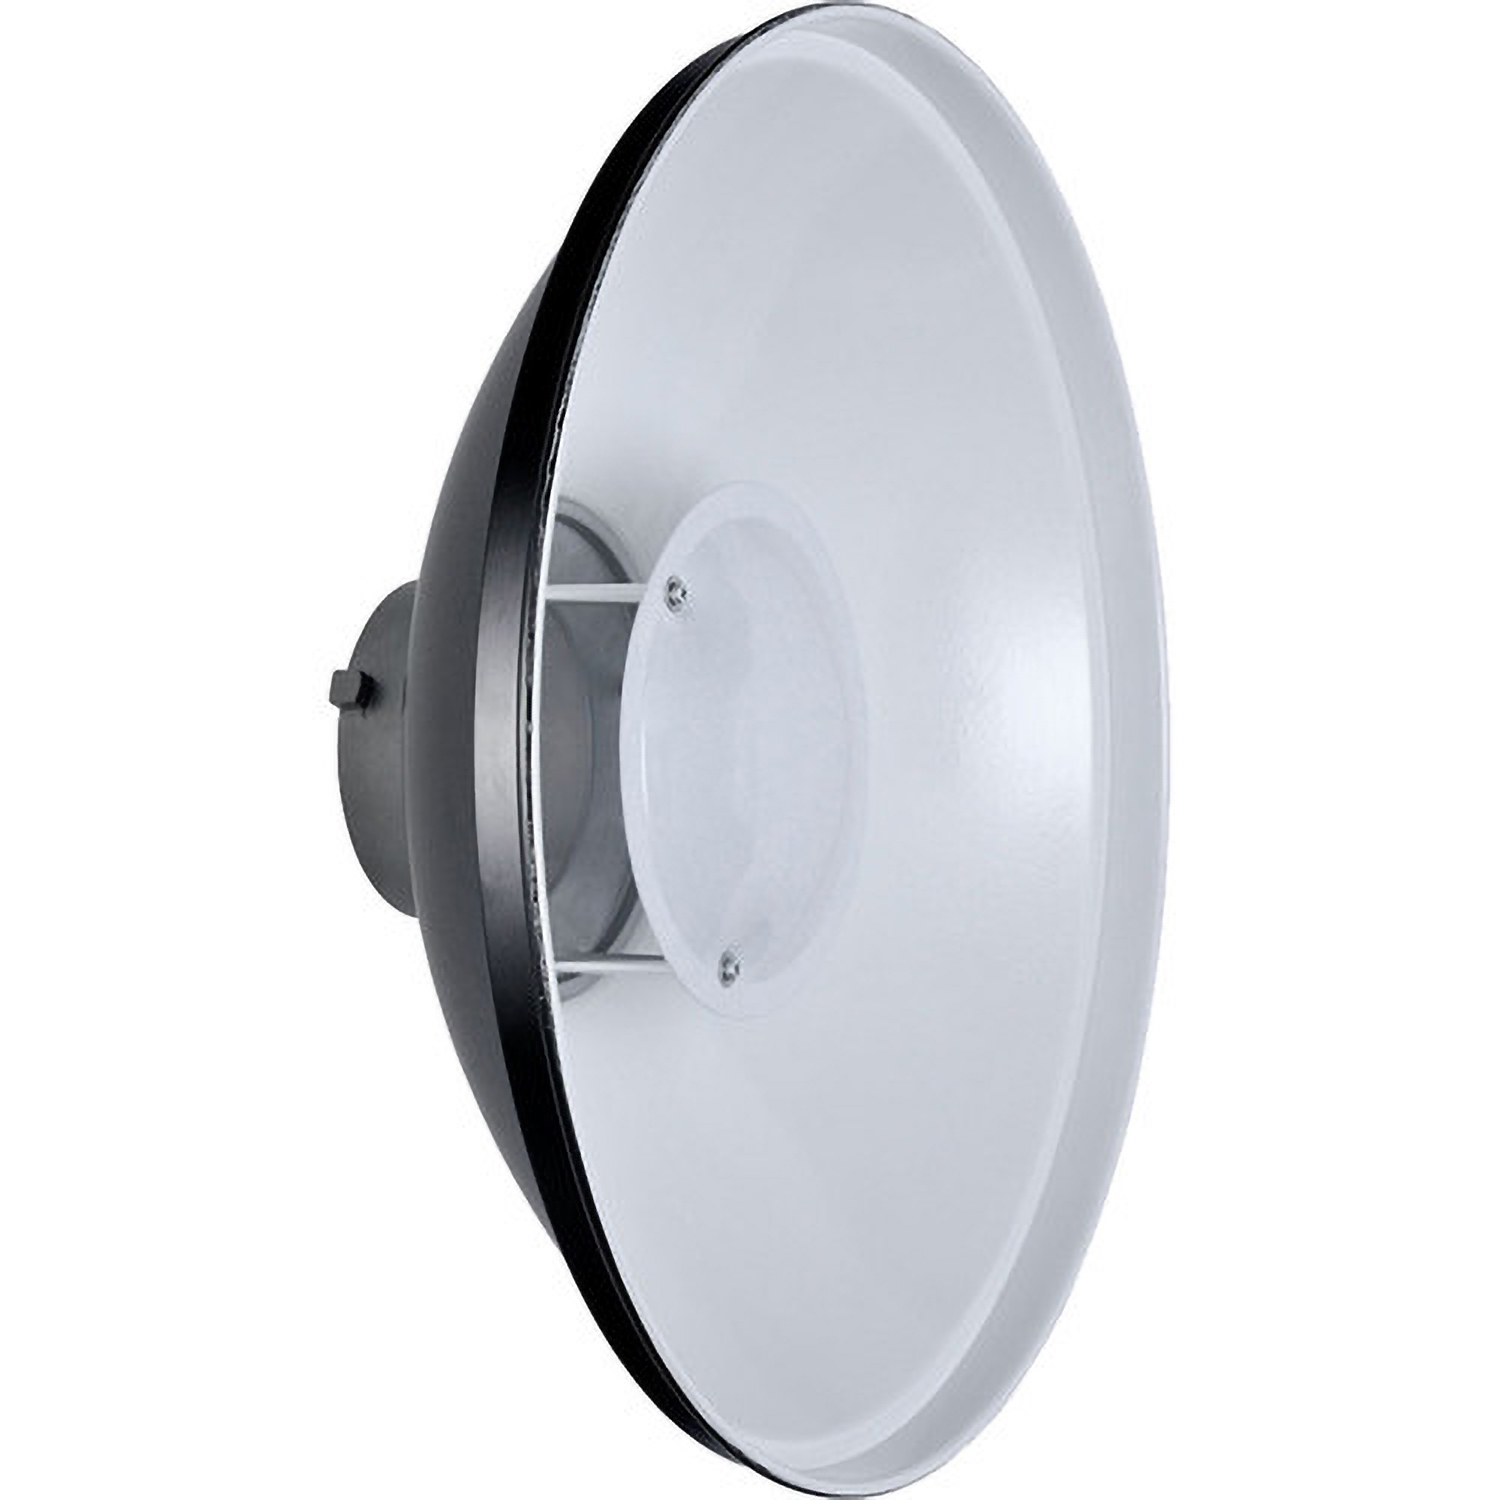 Godox beauty dish reflector